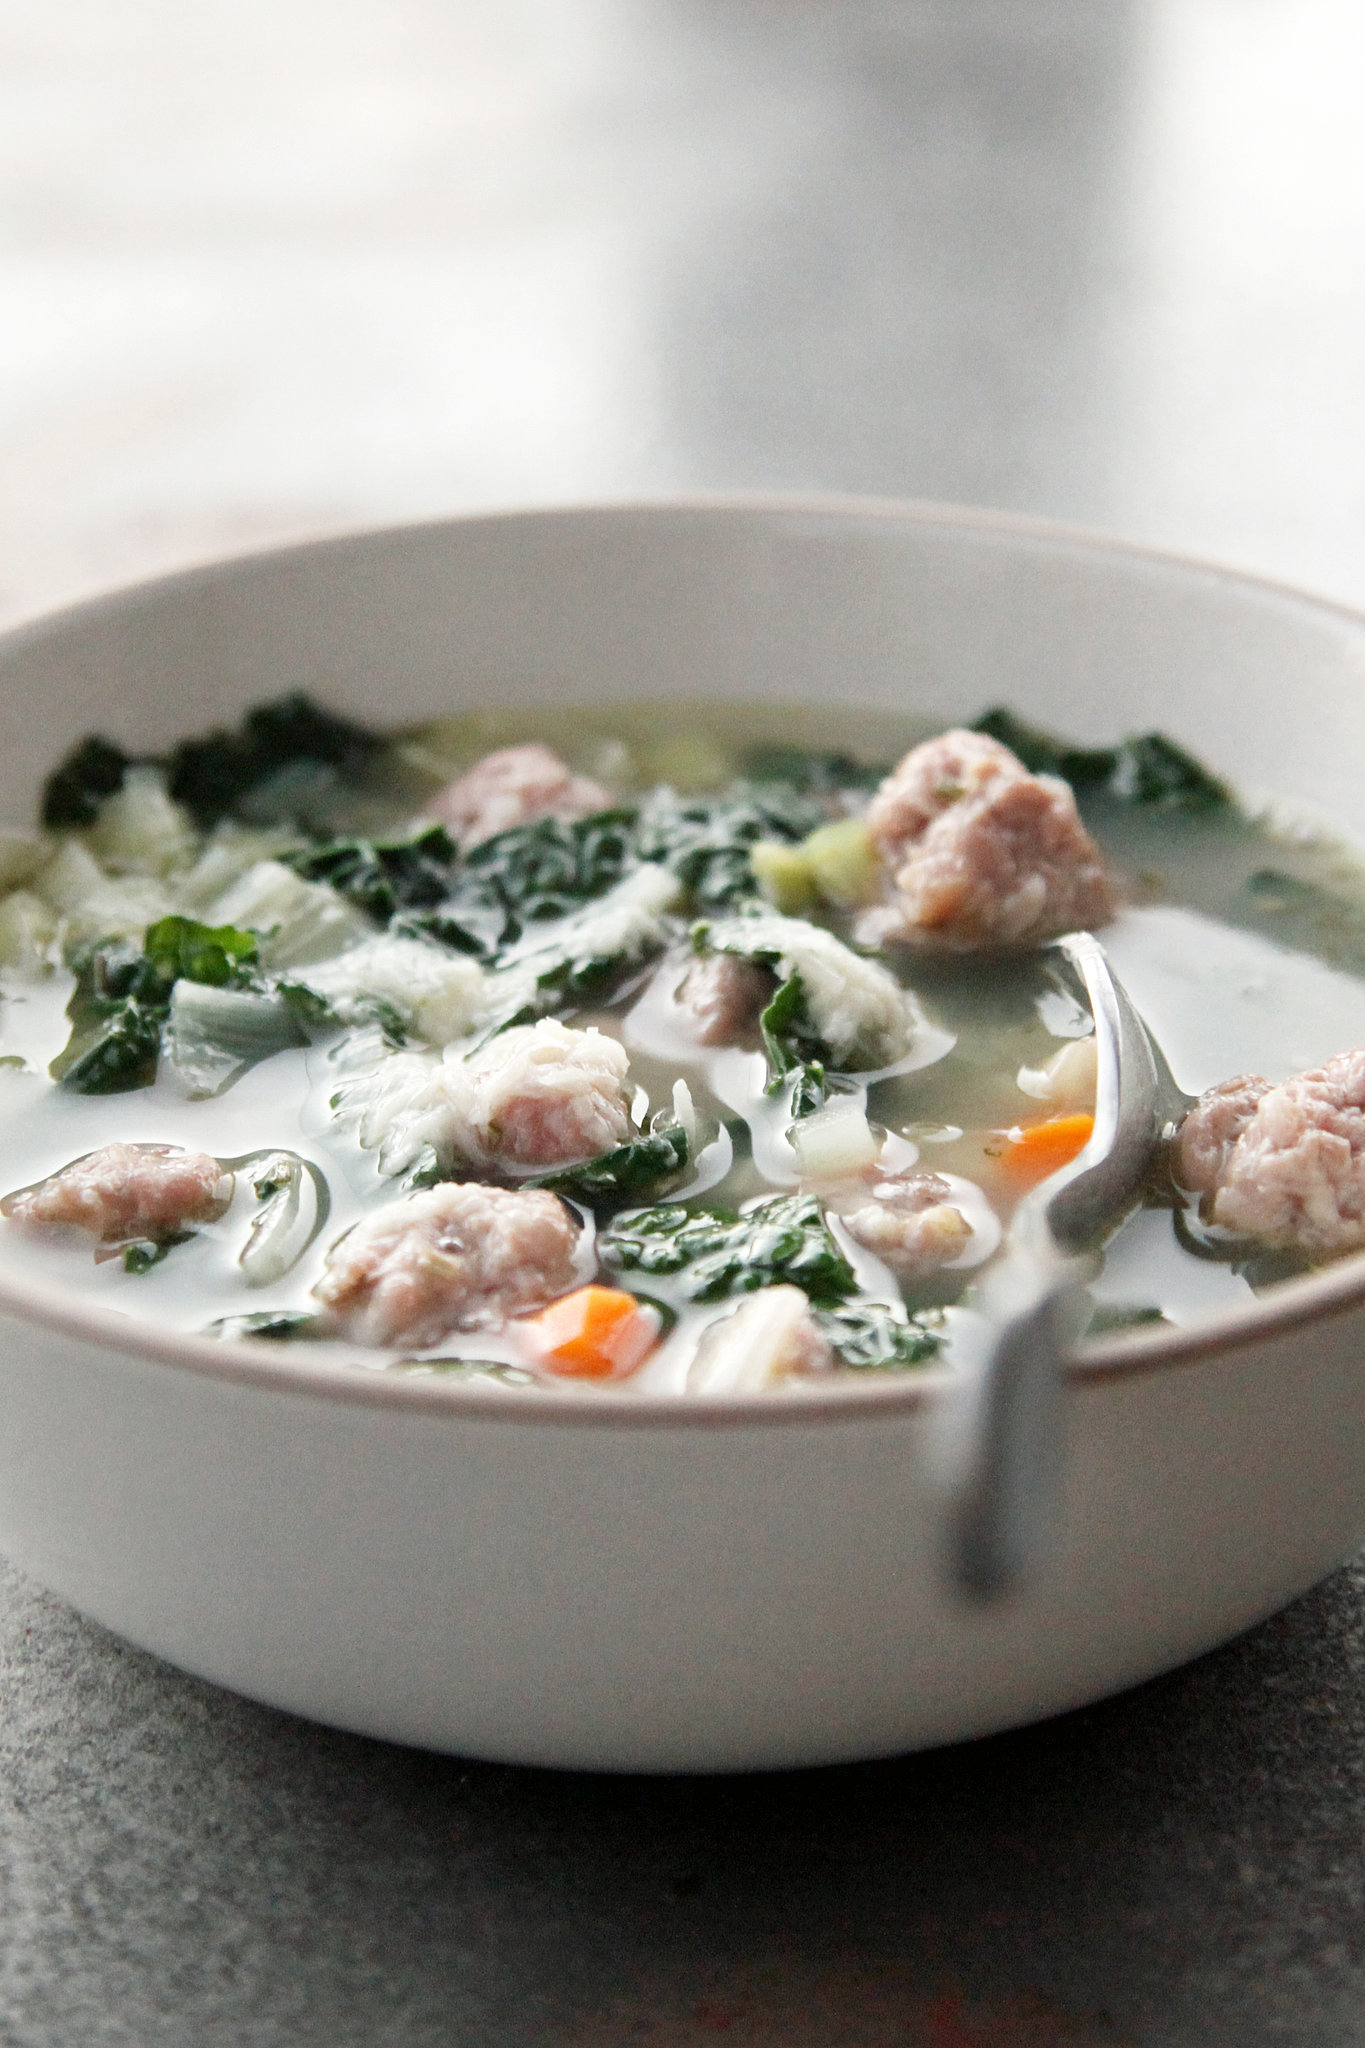 soup that won't disappoint, try this kale, bean, and sausage soup ...